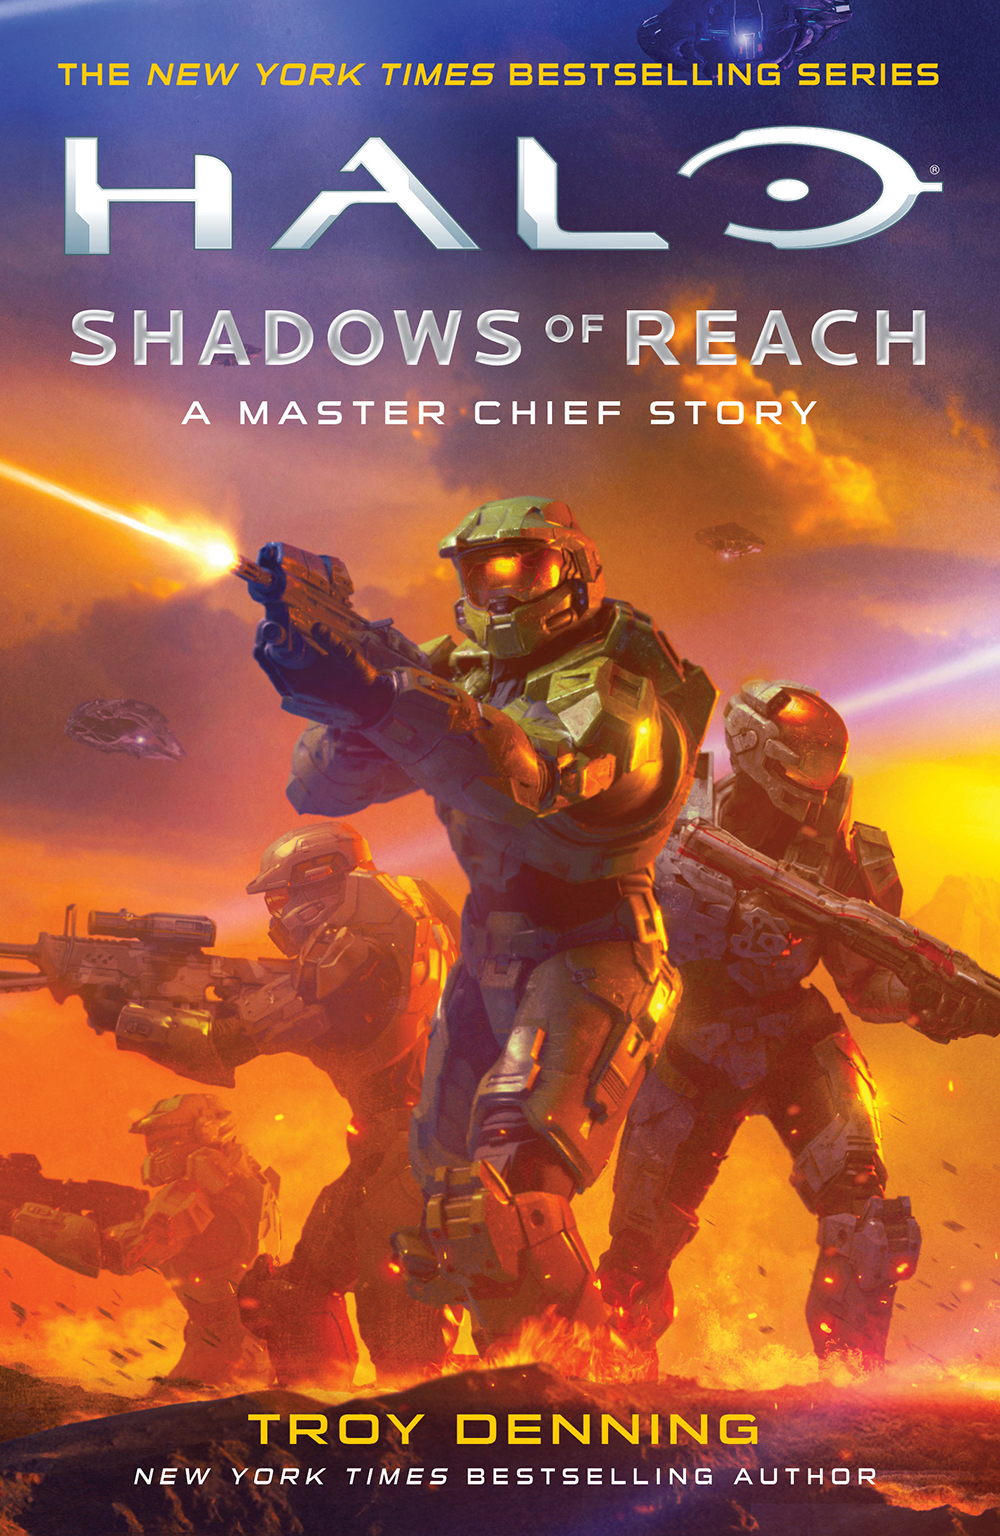 Halo: Shadows of Reach - A Master Chief Story